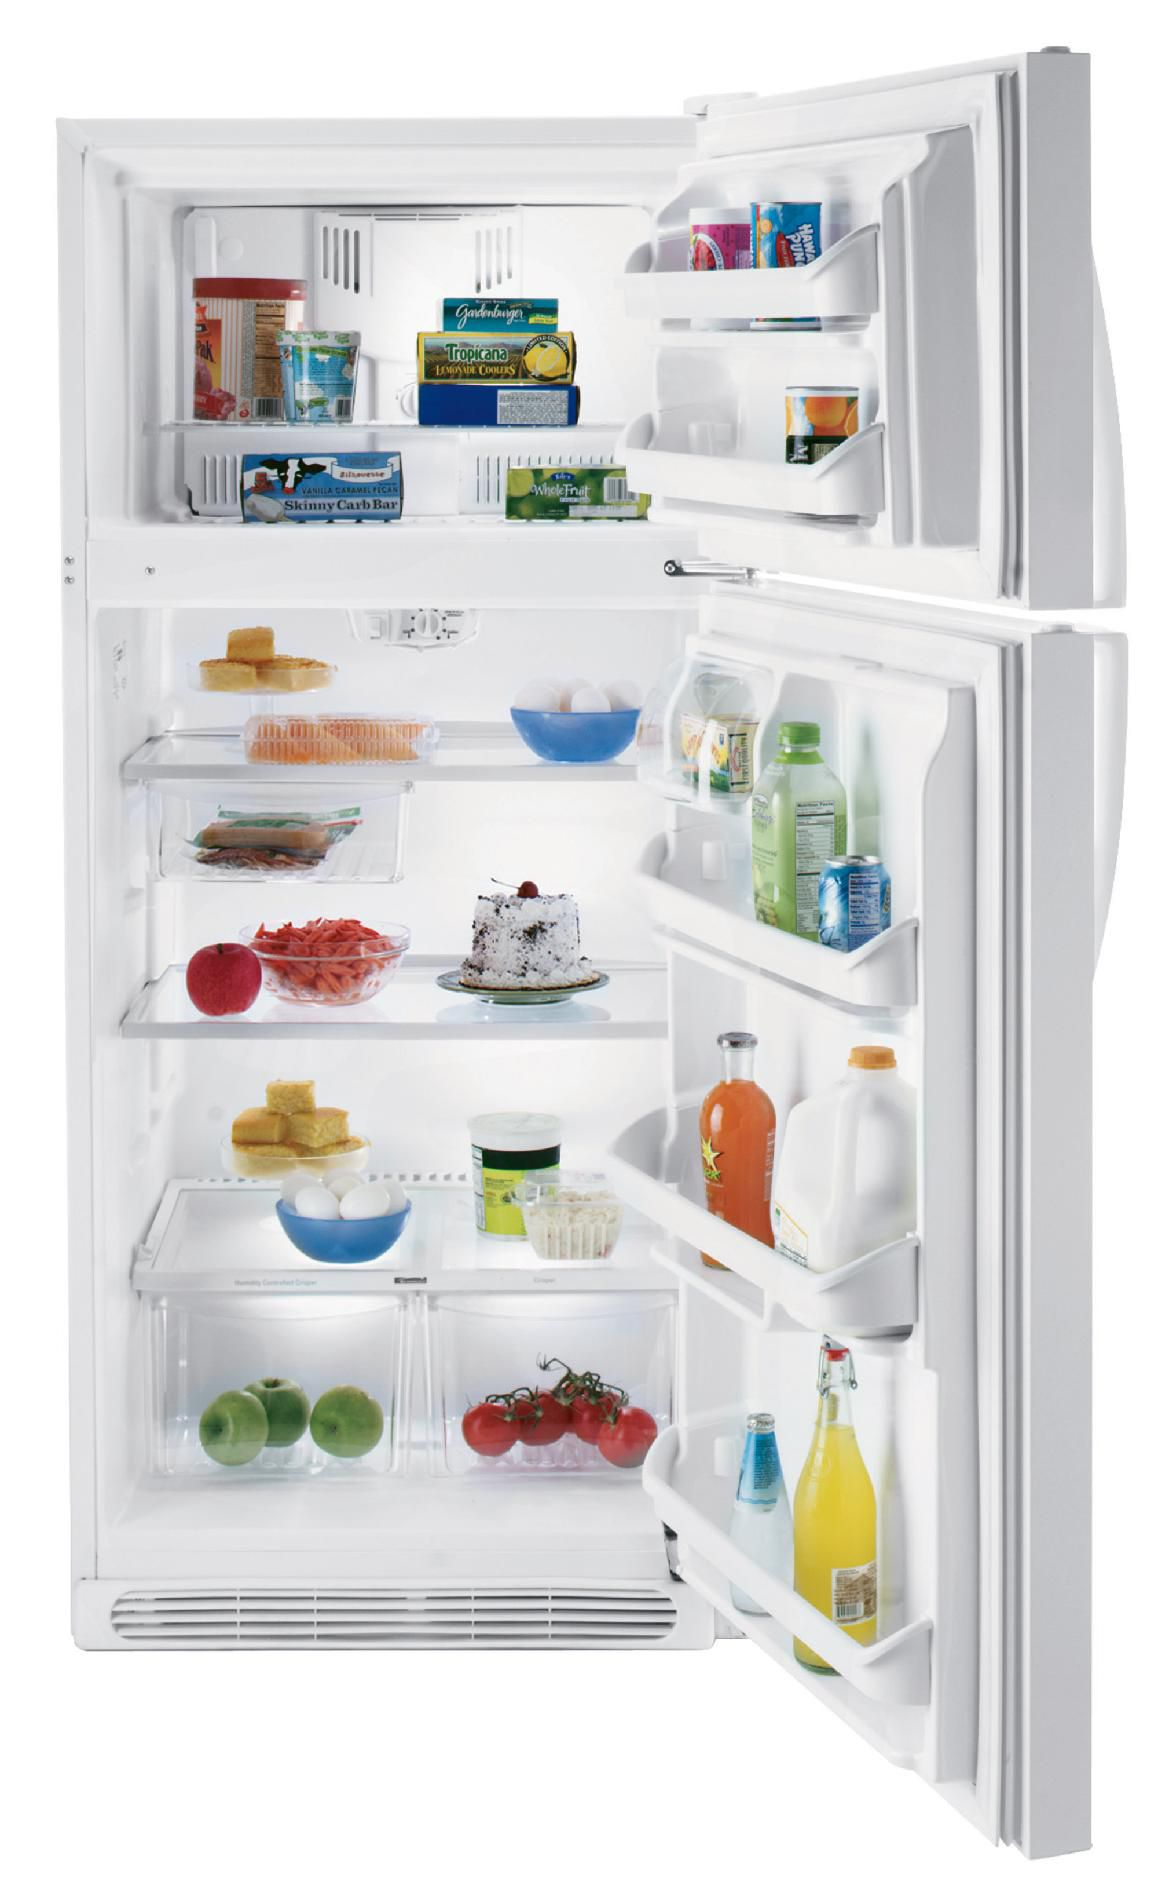 Kenmore 18.2 cu. ft. Top-Freezer Refrigerator, Non-Ice